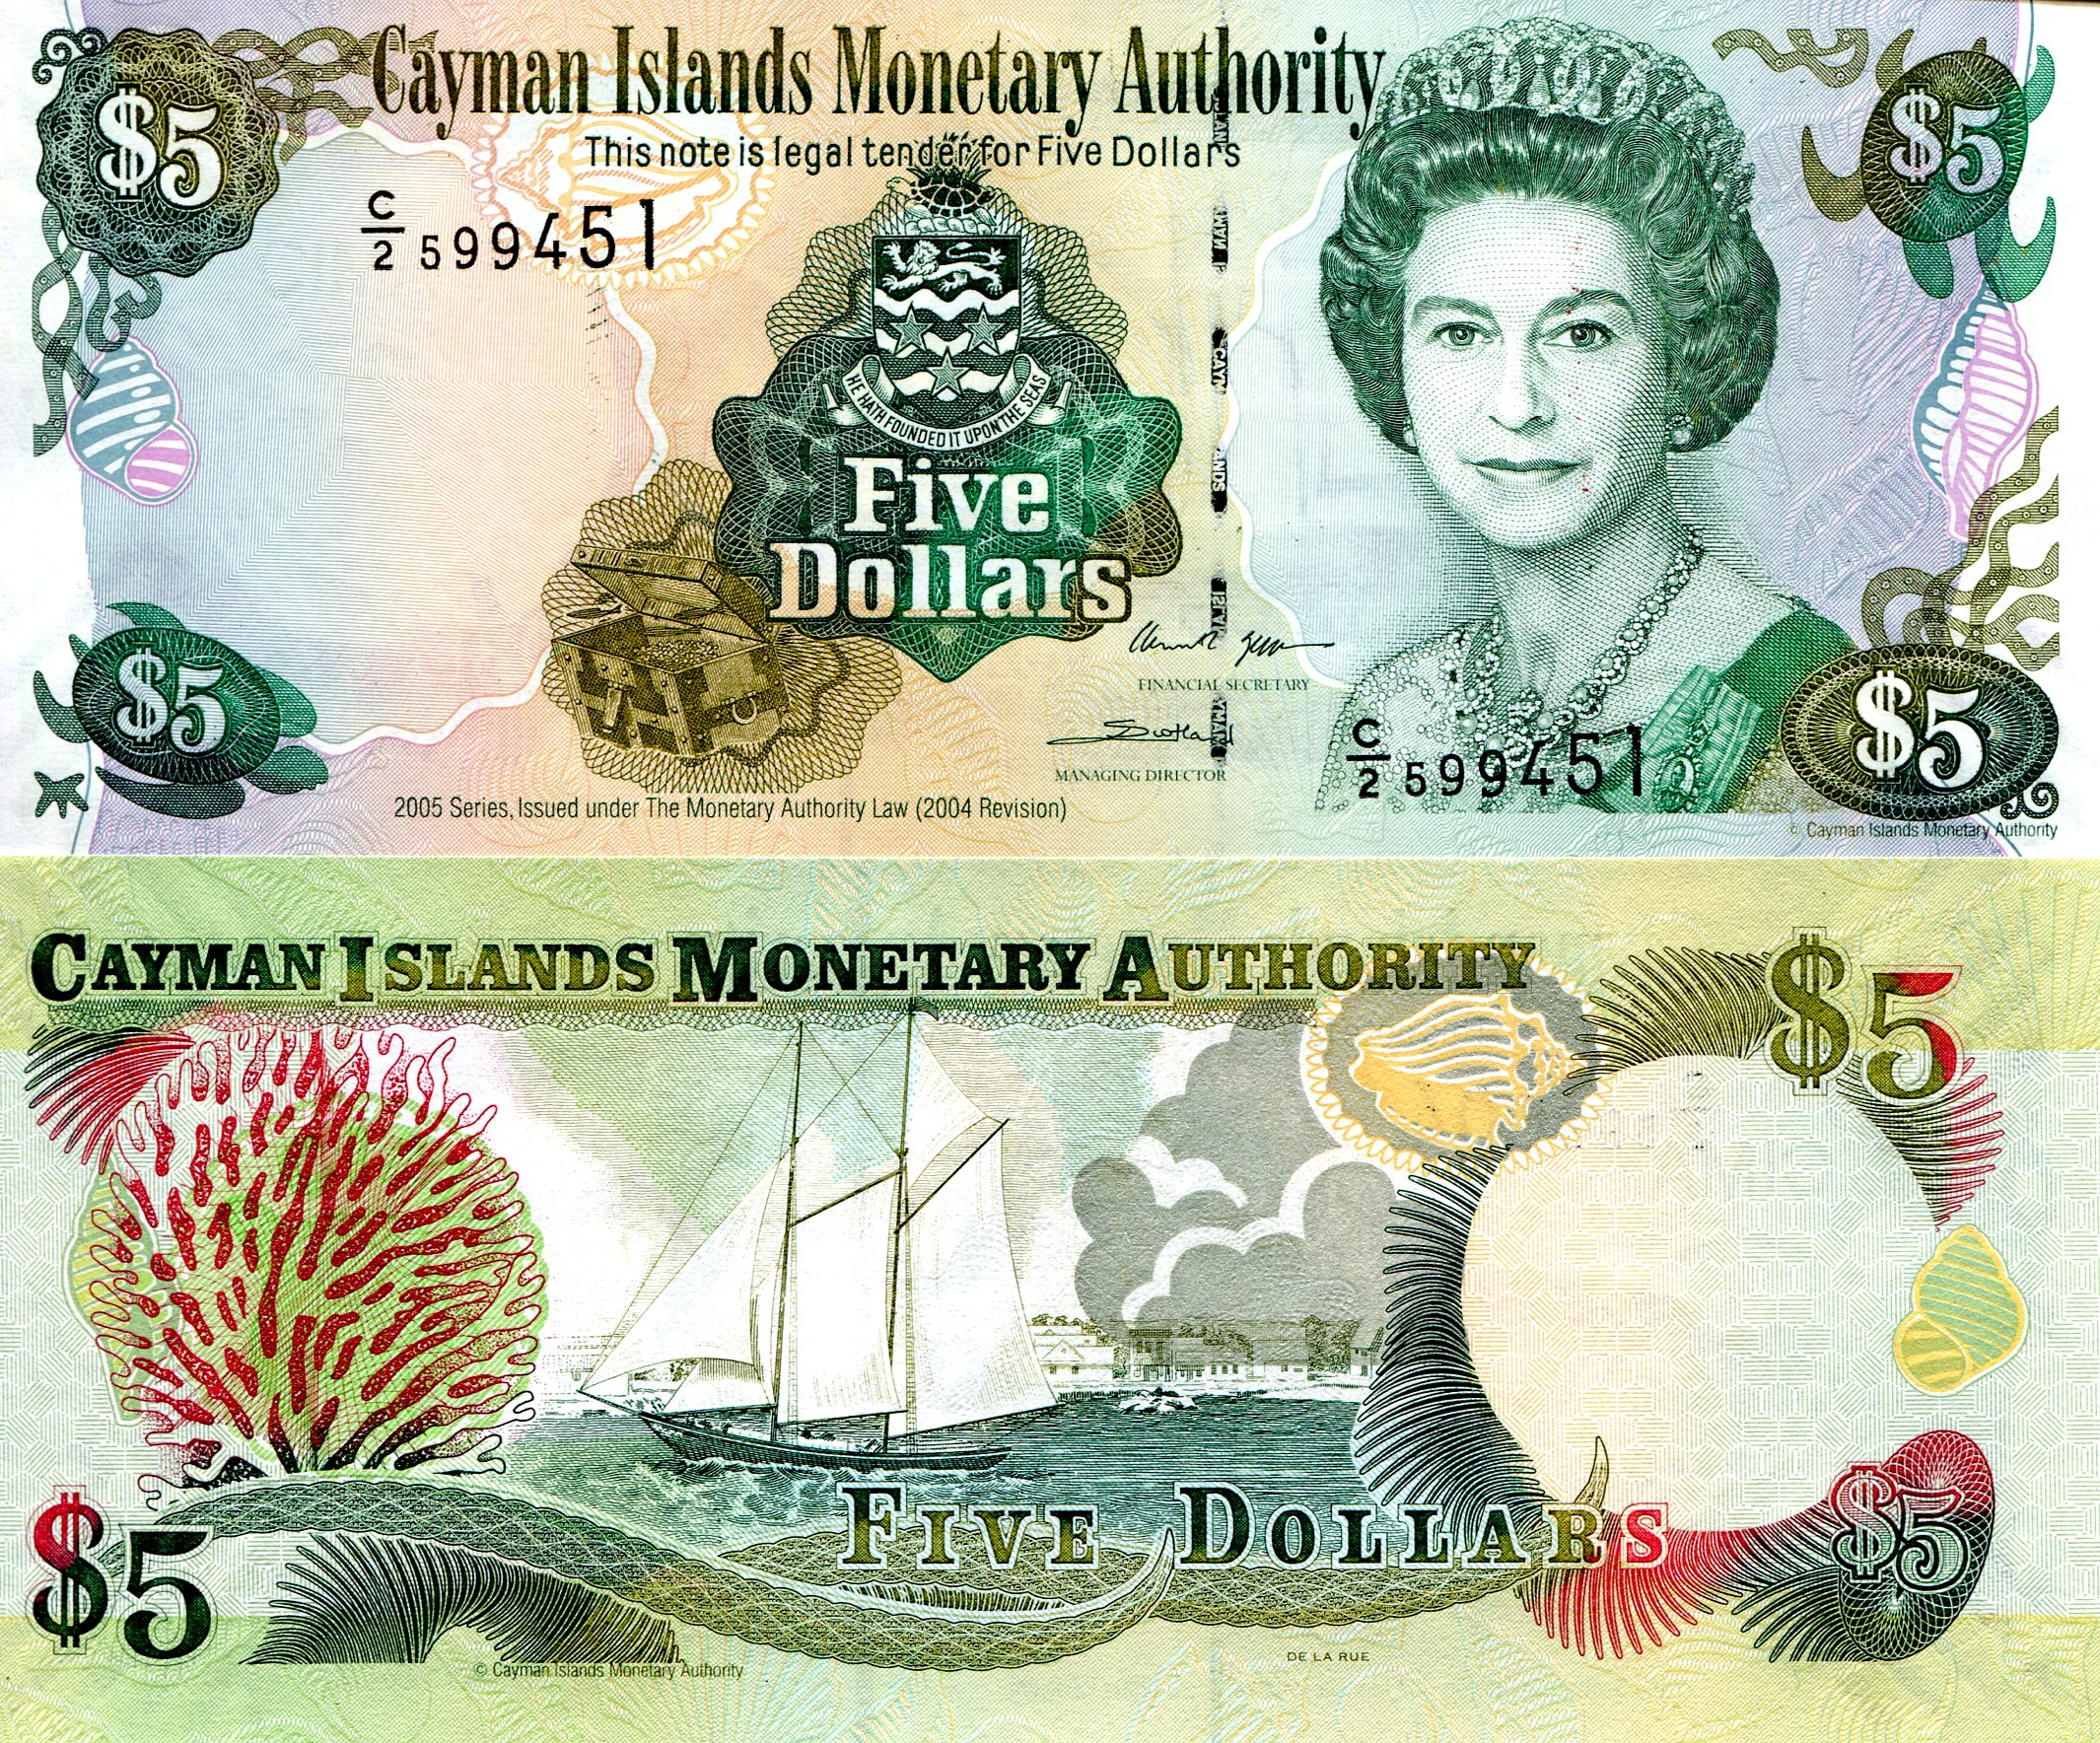 5 Dollars Unc Banknote Country Cayman Islands